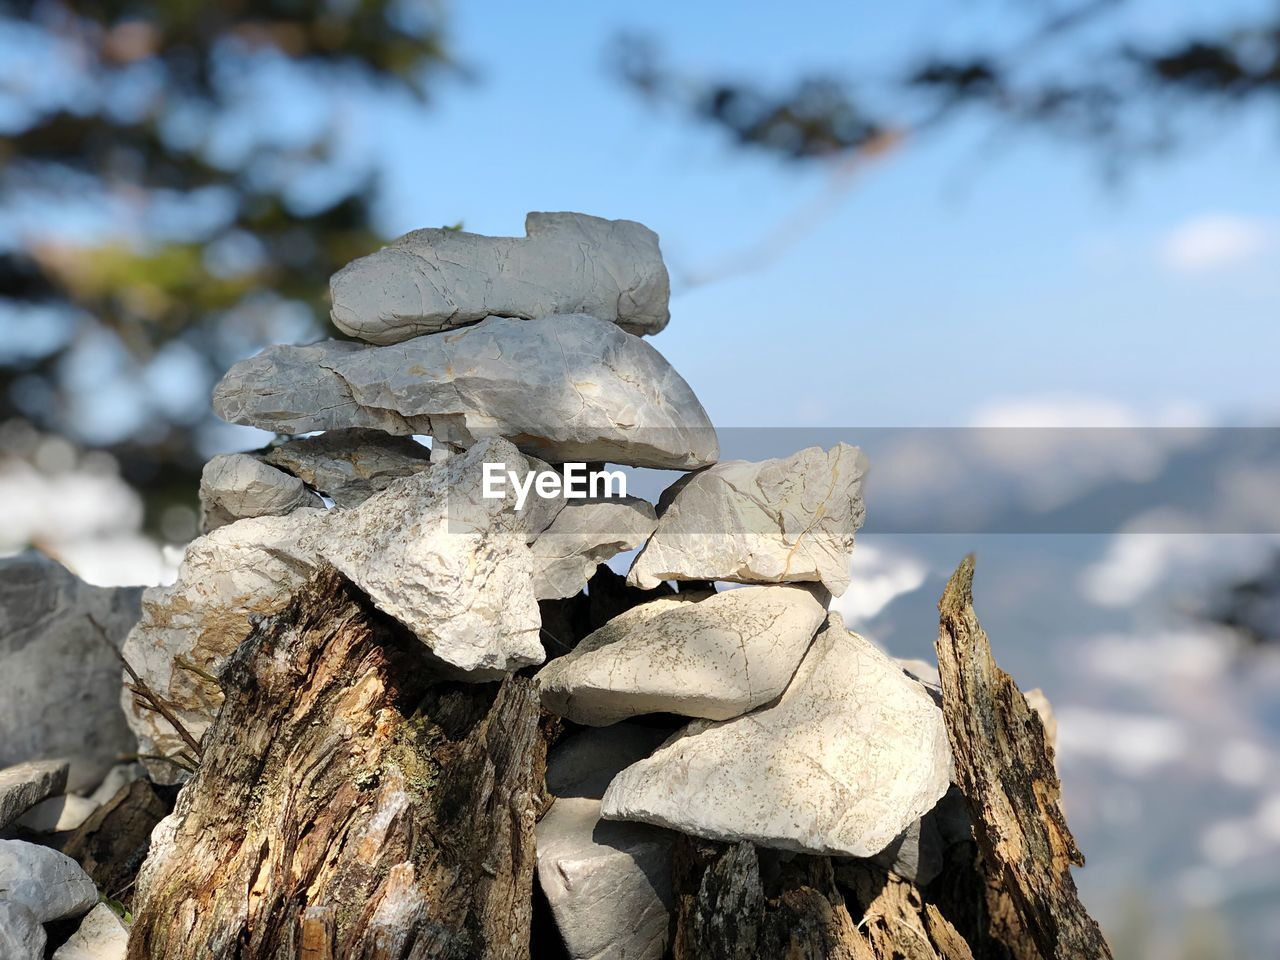 focus on foreground, tree, nature, no people, day, solid, rock, close-up, beauty in nature, tranquility, trunk, tree trunk, plant, textured, rock - object, stack, outdoors, sky, wood - material, sunlight, dead plant